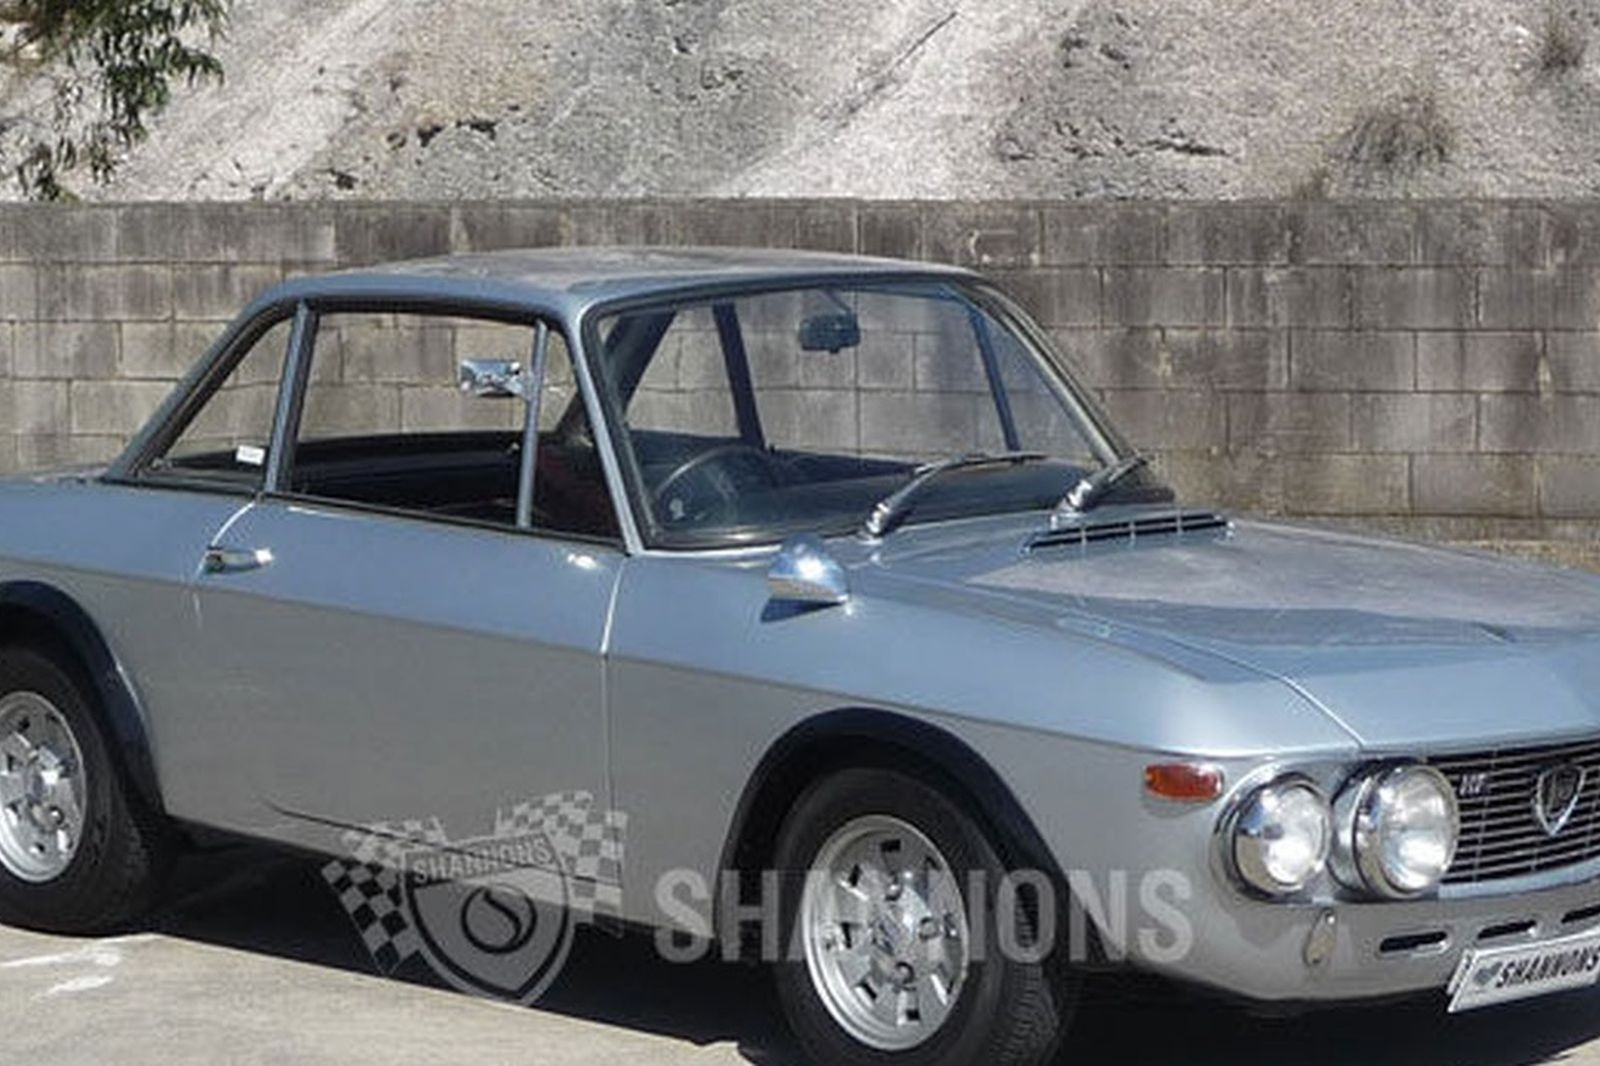 Lancia Fulvia 1600HF Rallye Coupe Auctions - Lot 18 - Shannons